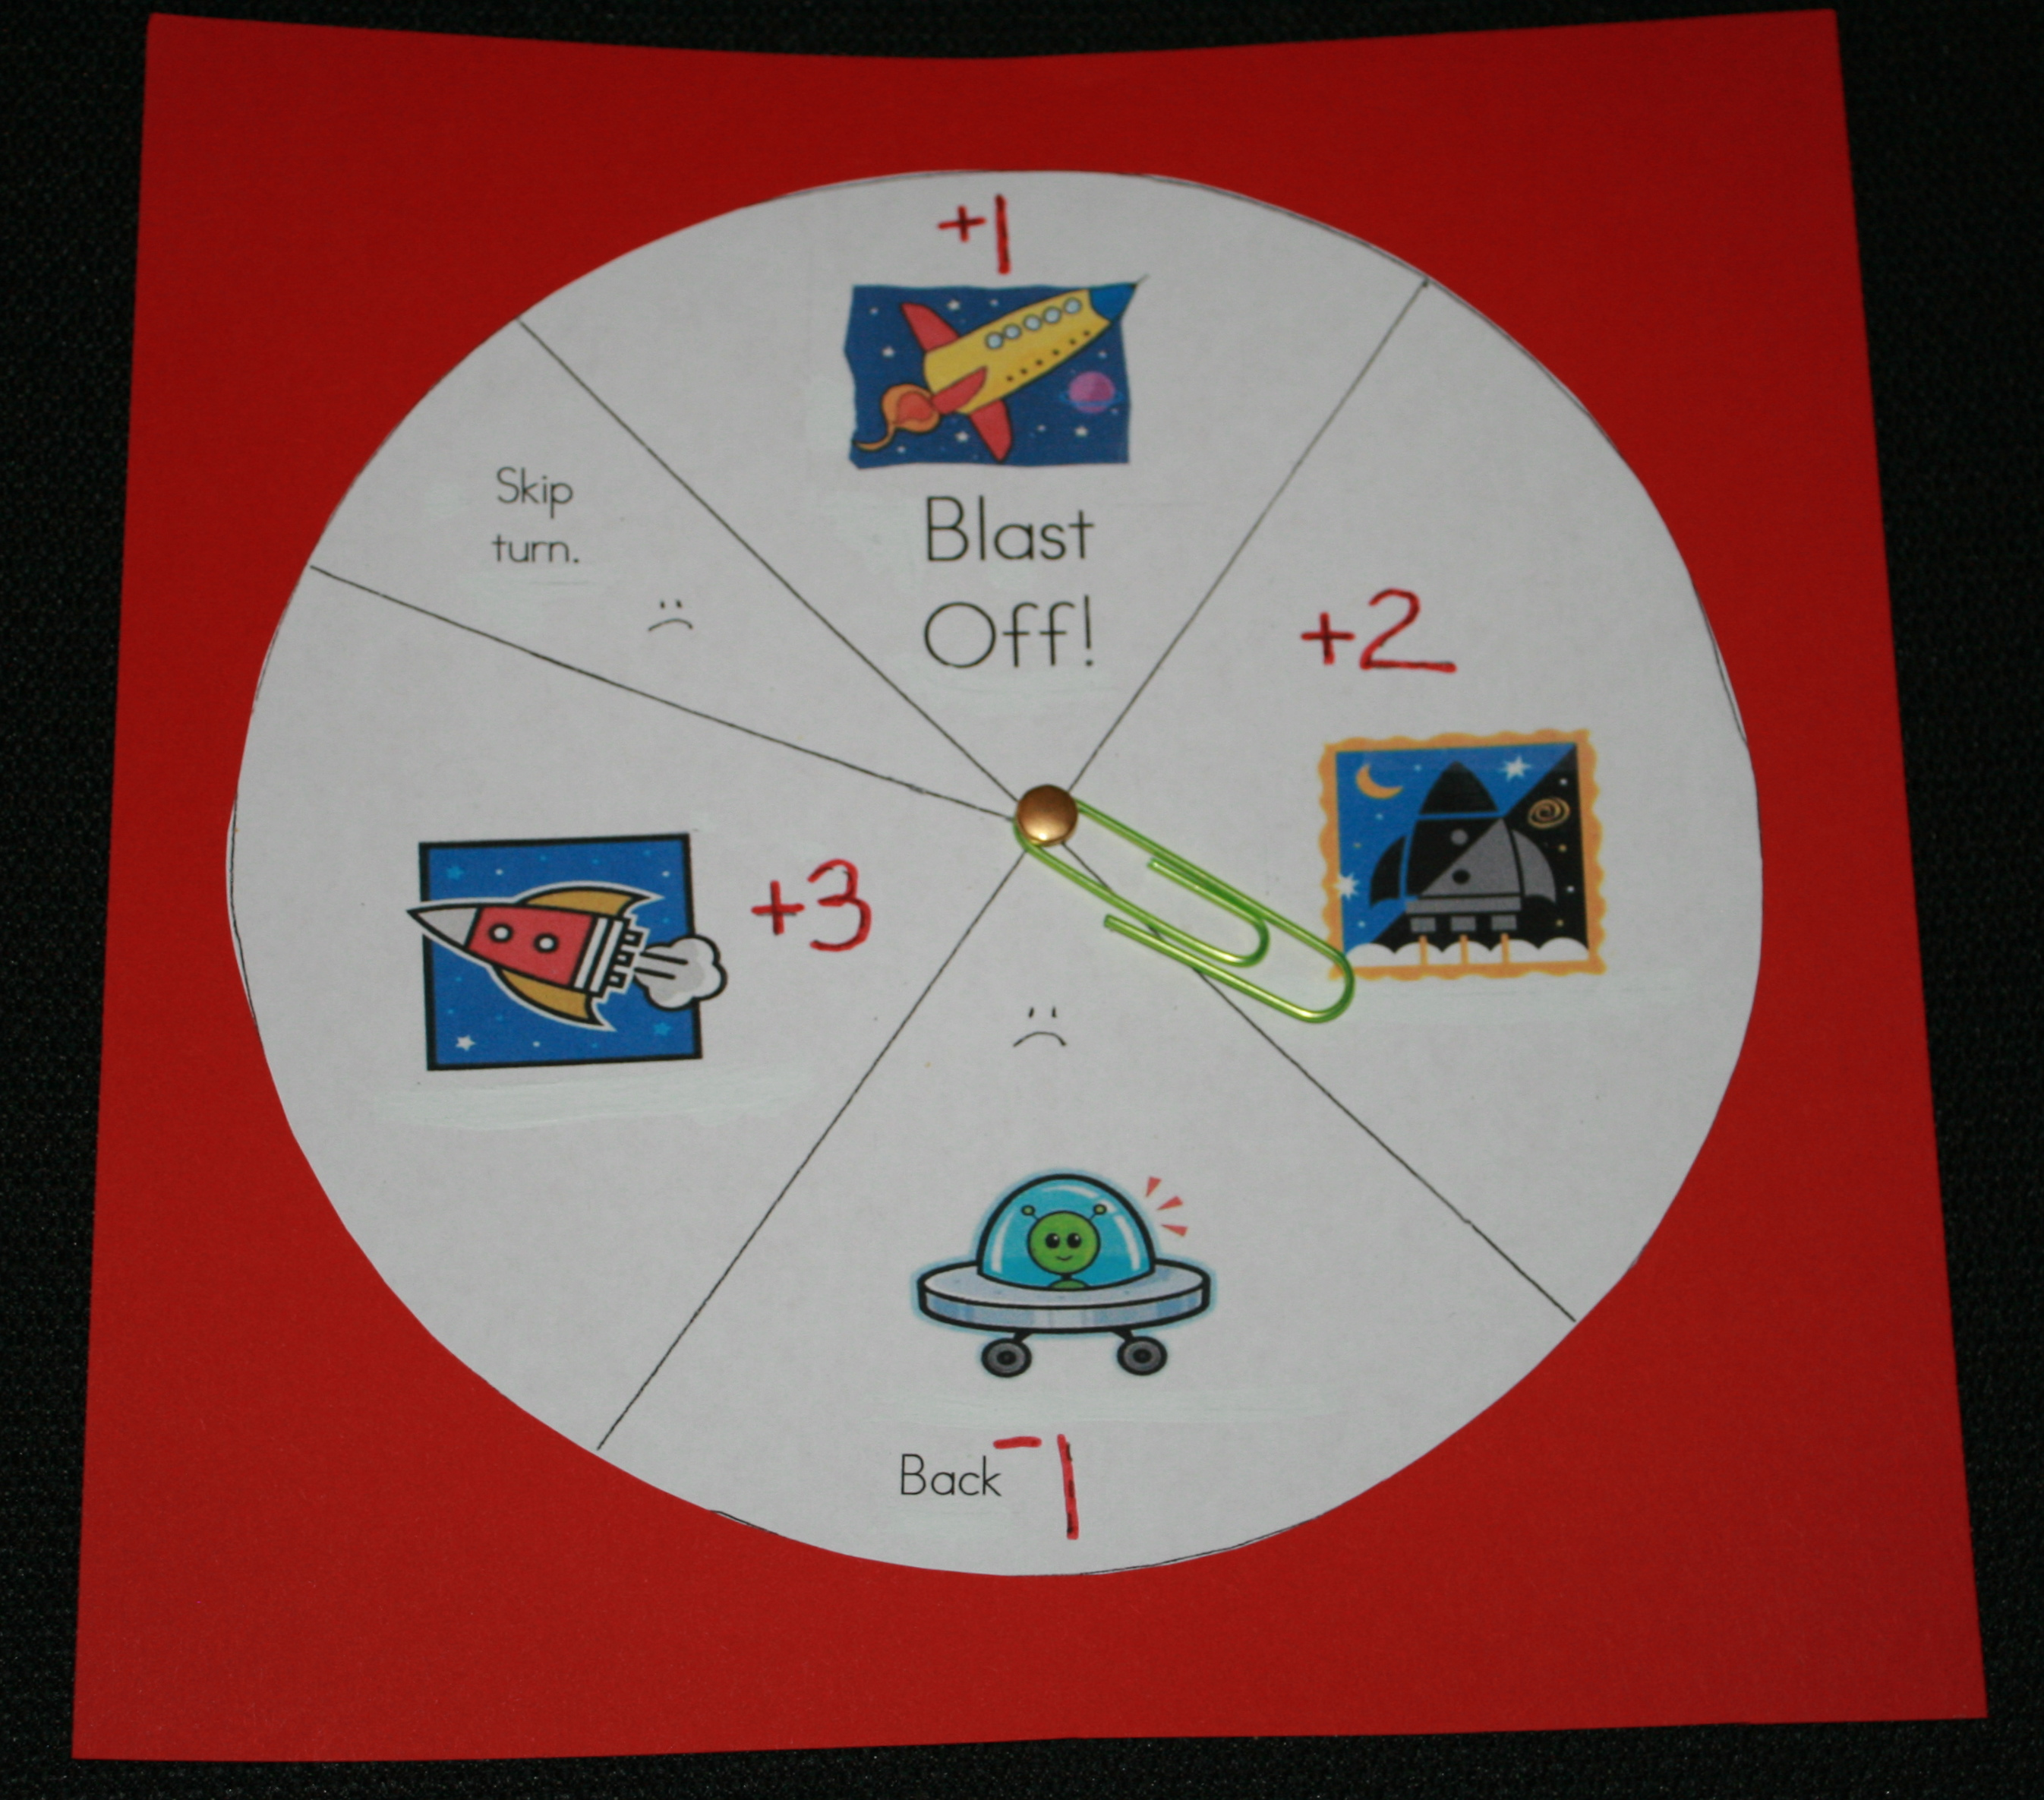 blast off spinner game, counting backwards, blast off activities, blast off lessons, blast off ideas, learning to count backwards, counting backwards from 20 to 0, counting backwards from 10 to 0